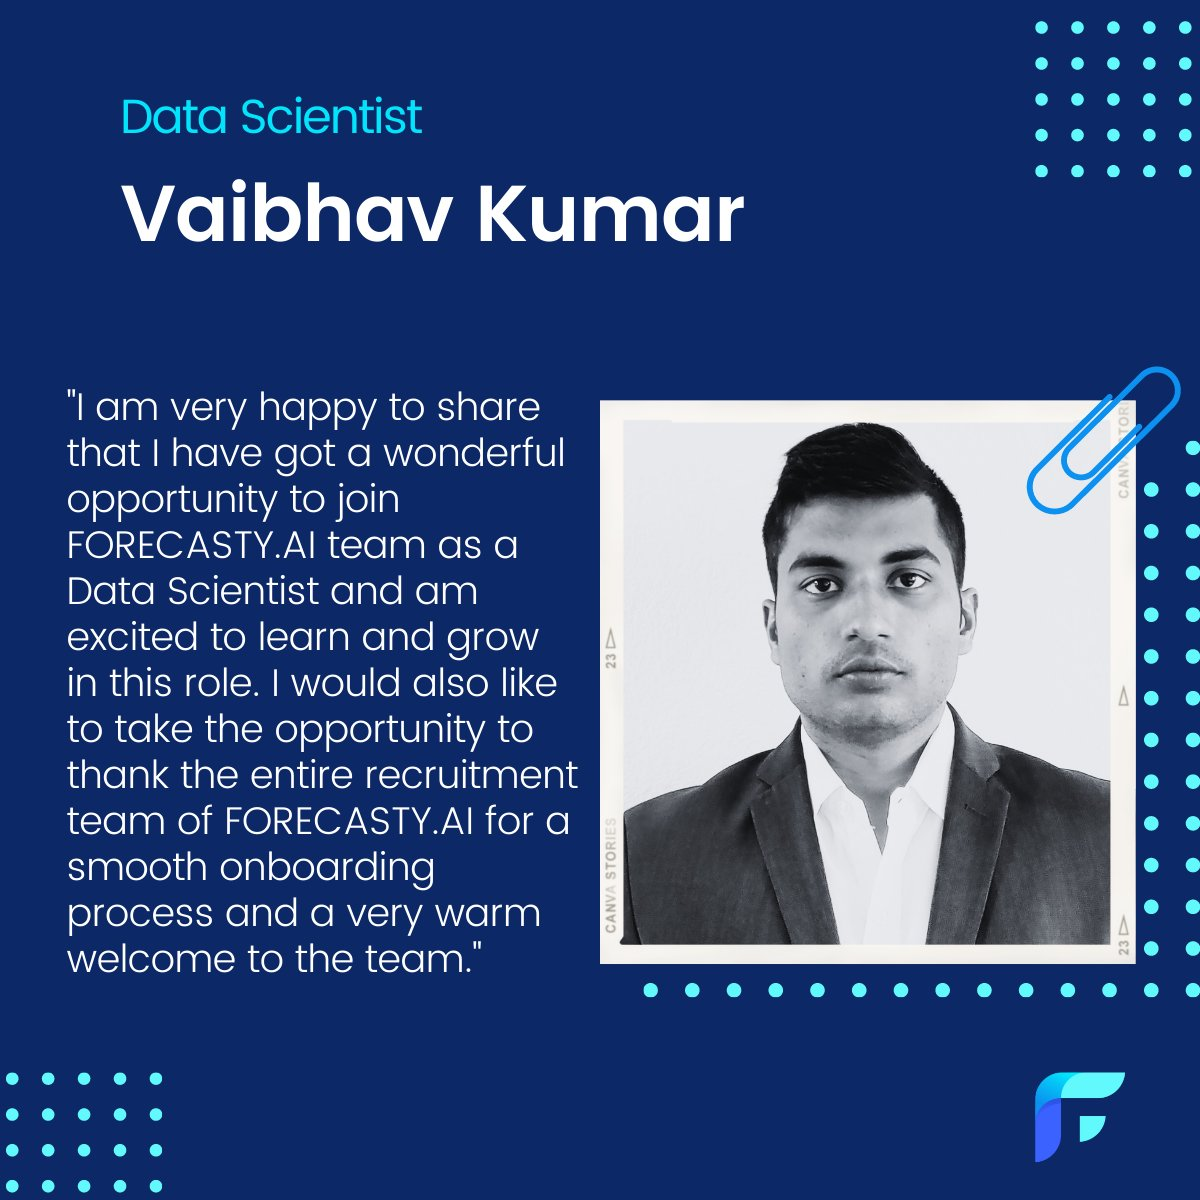 Let's join us on welcoming #ForecastyAI's newest data scientist Vaibhav. We are proud to have him with us on our venture journey and look forward to achieving great things with his new ideas, talents and work ethics. 🤗  #ForecastyAI #newmember #welcometotheteam #datascientist